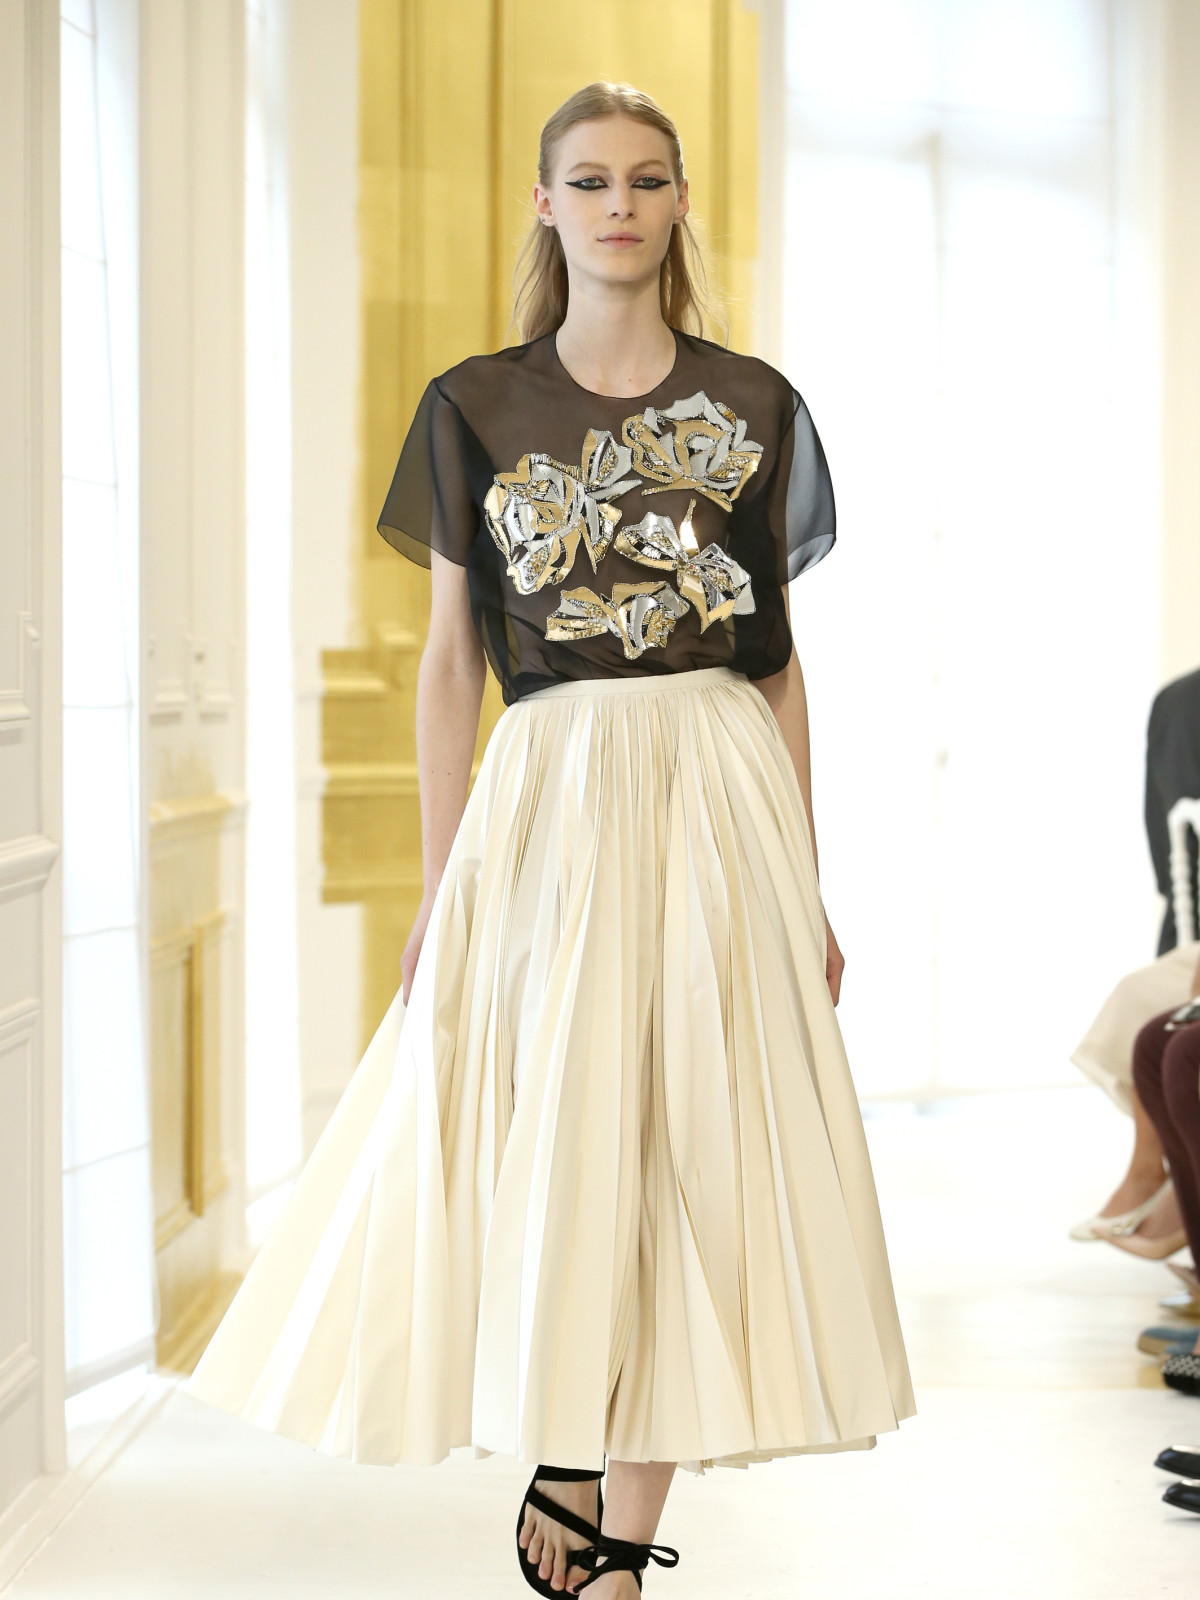 Dior haute couture runway show Paris finale look 45